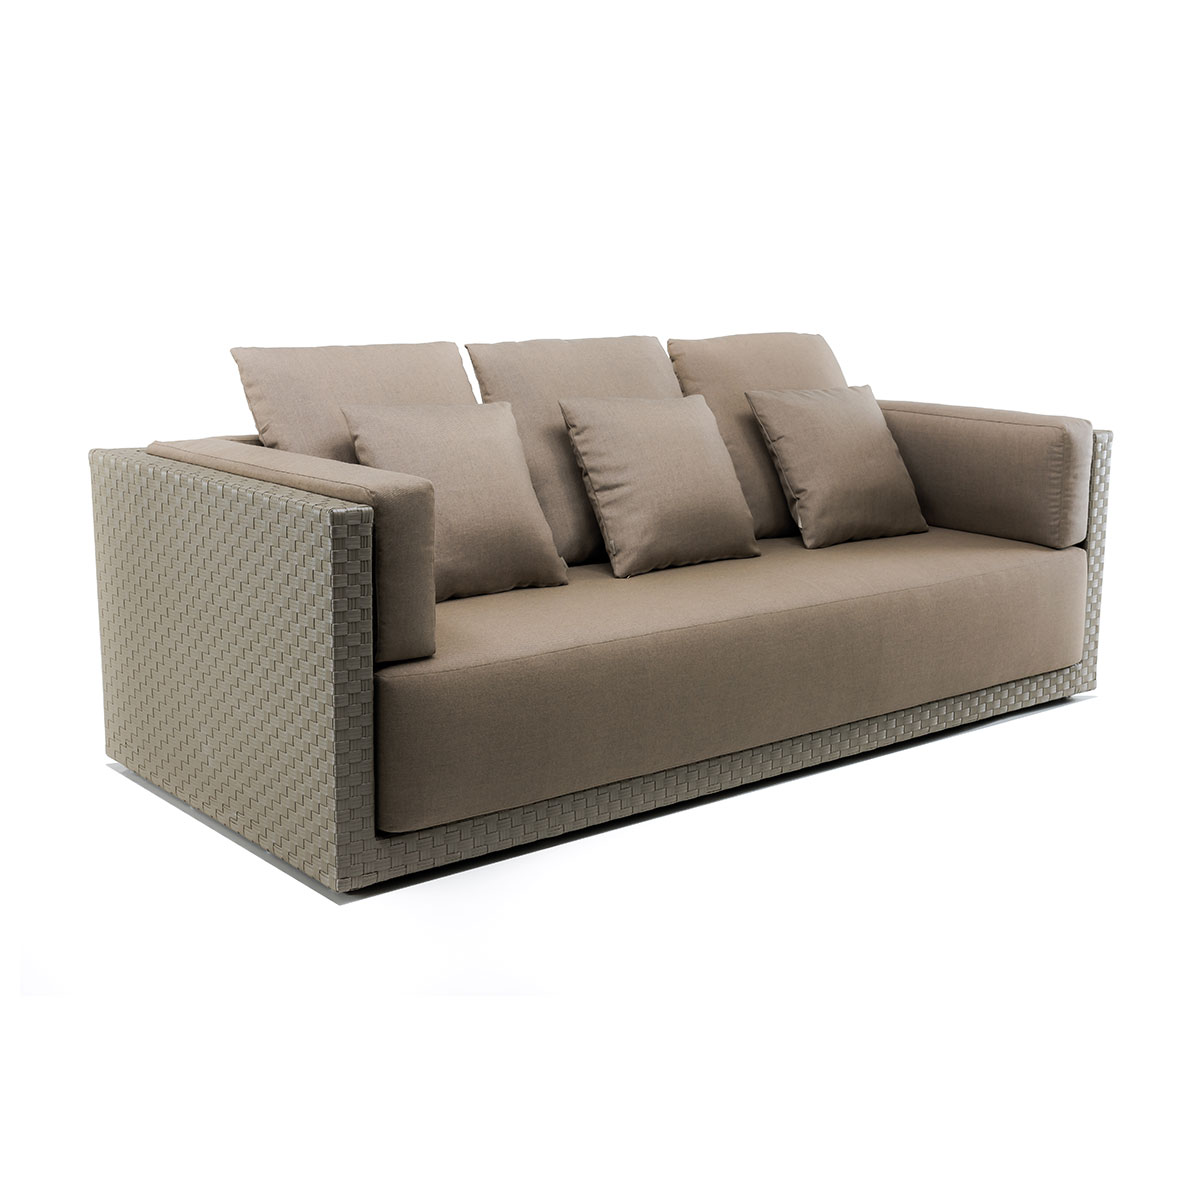 3 seated sofa Sofas Braid